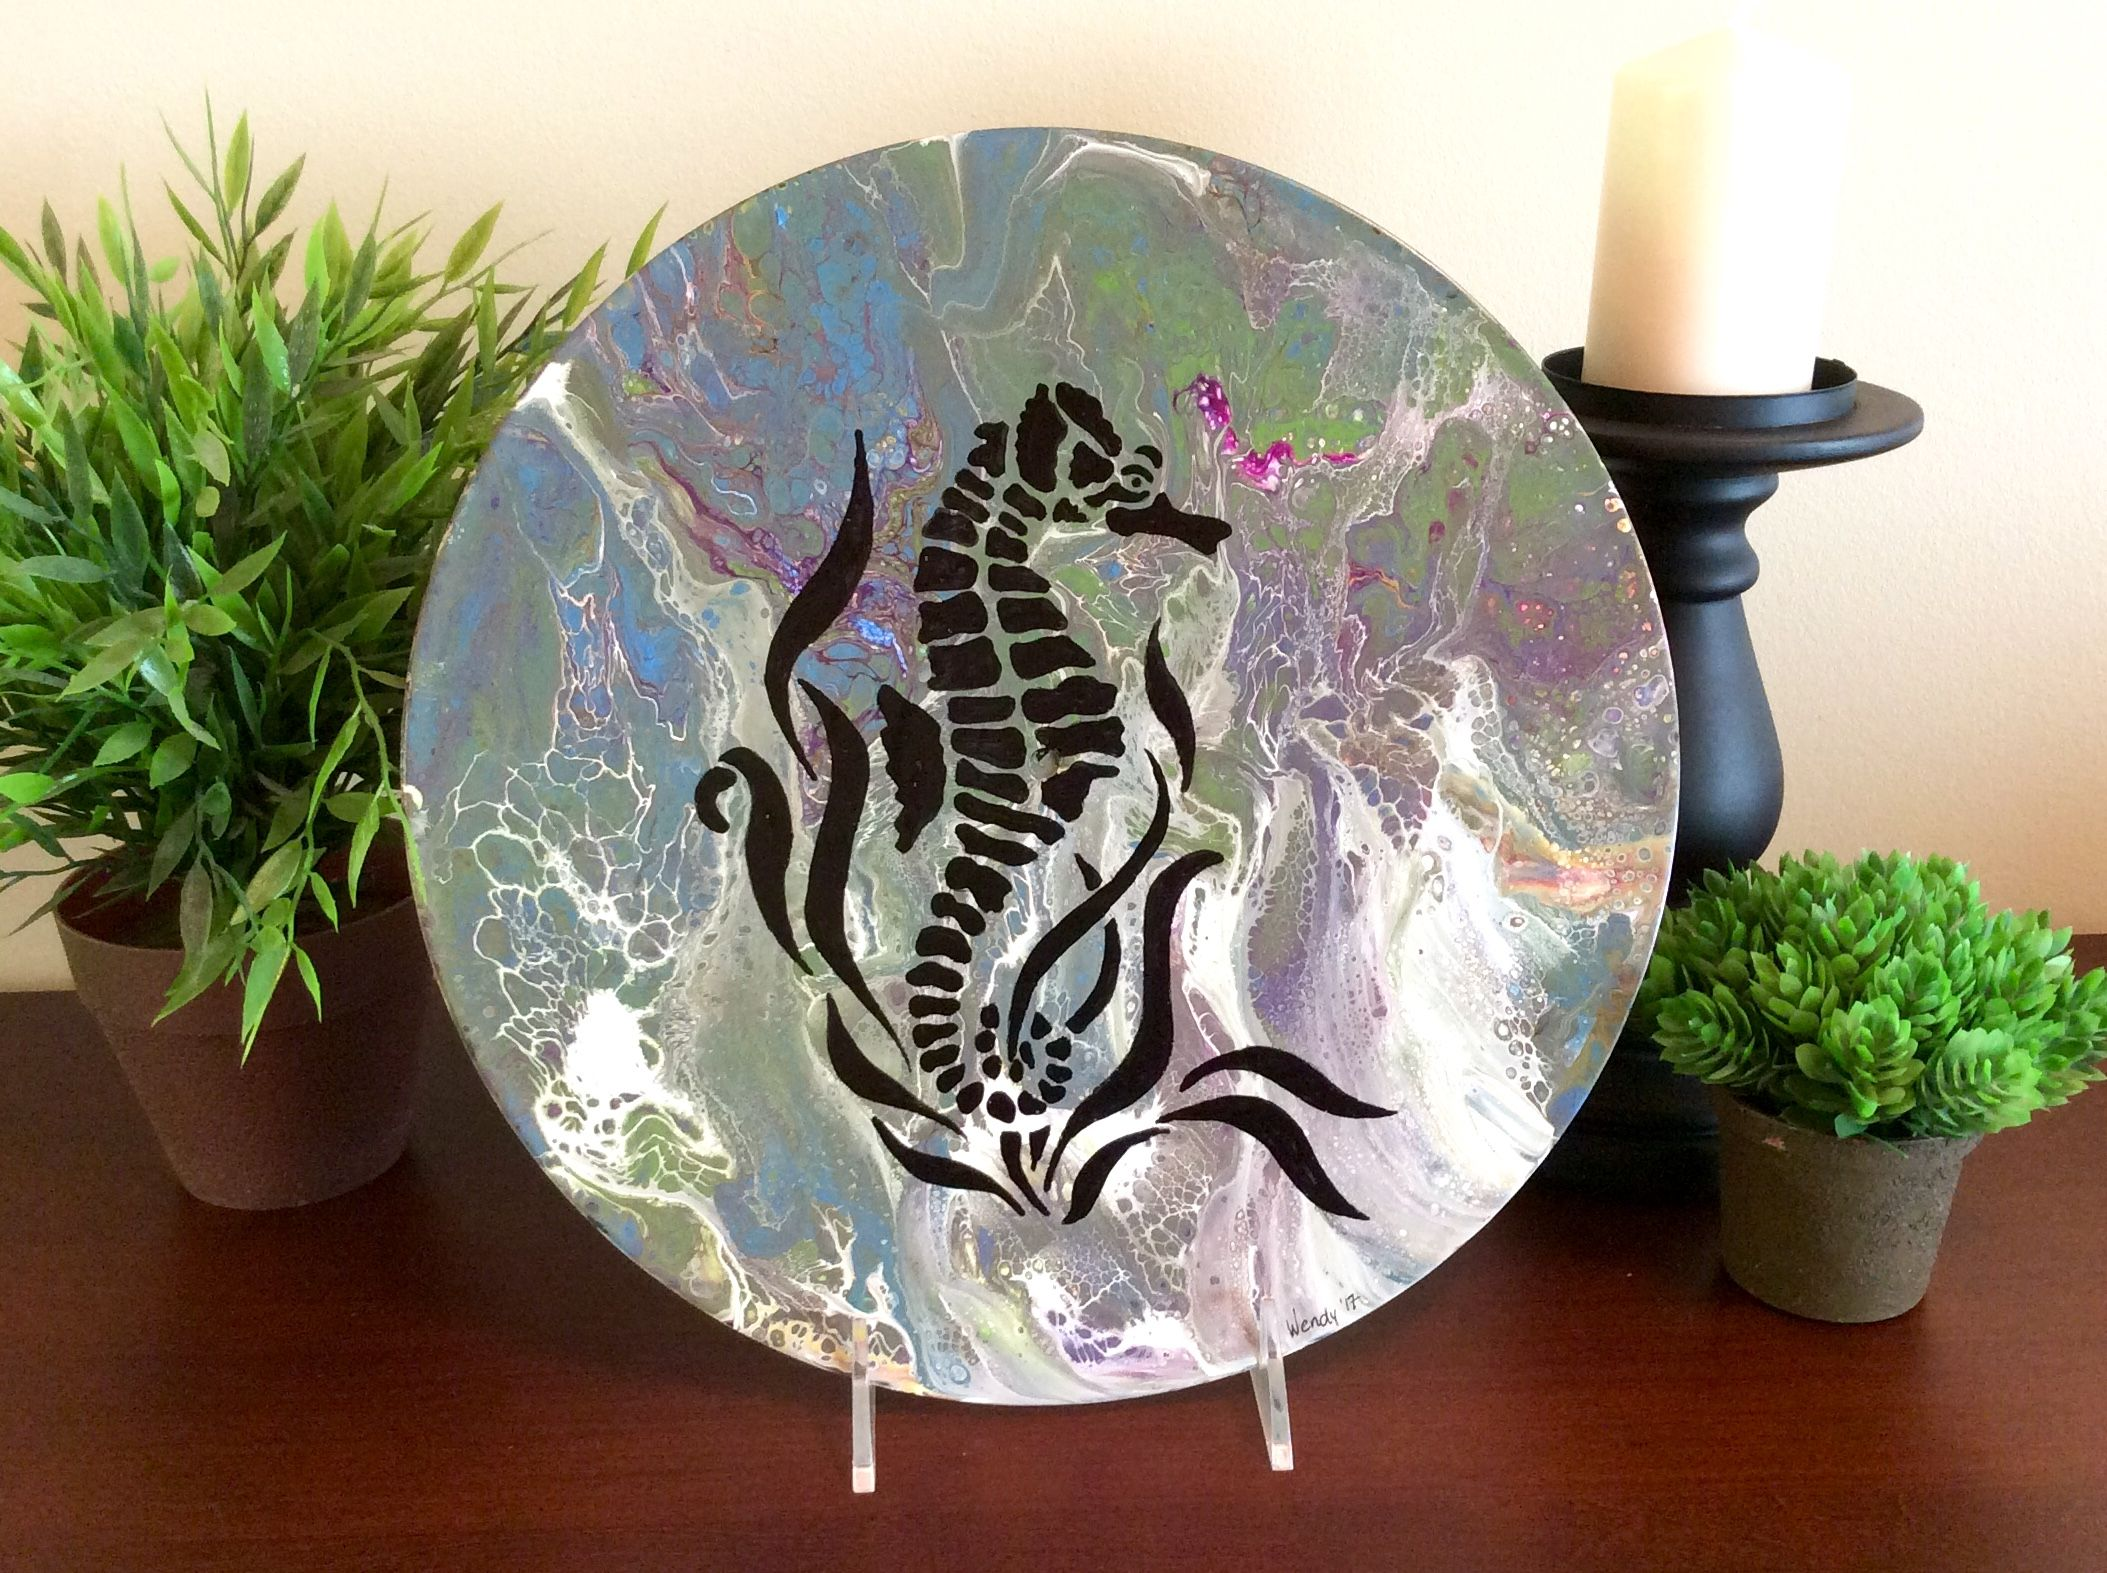 Fluid painting on vinyl record with seahorse silhouette.